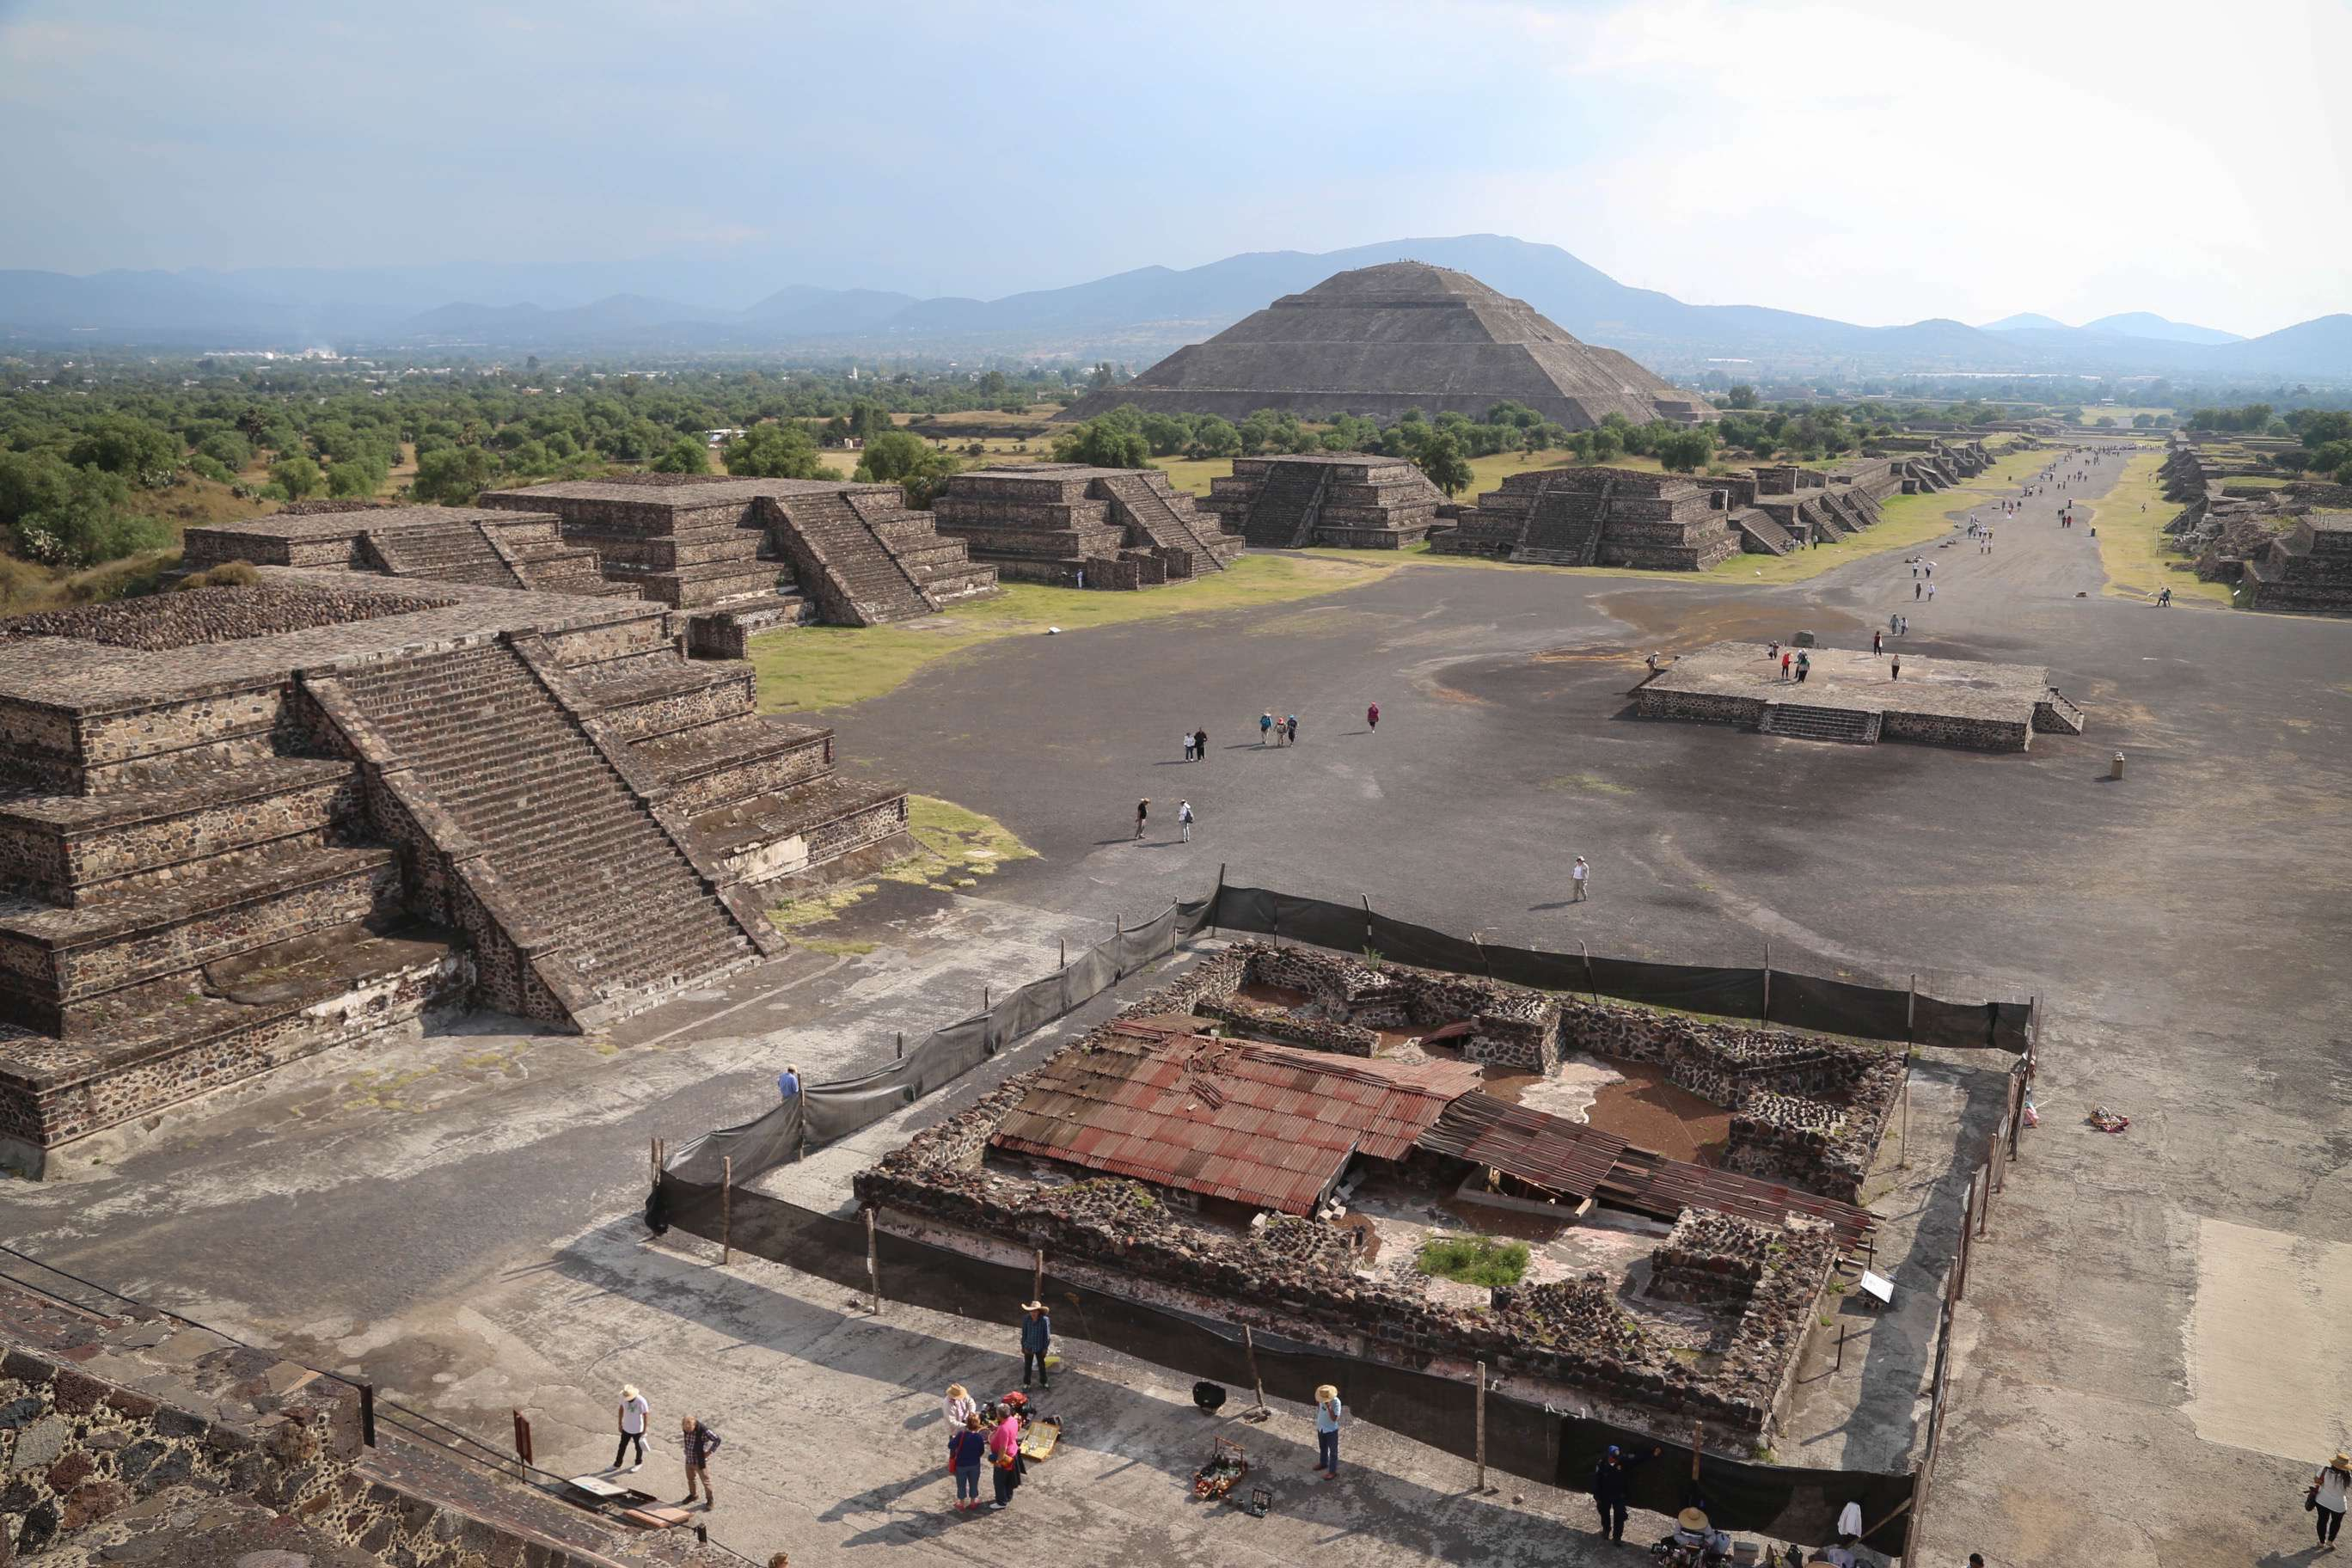 The Avenue of the Dead runs off to the right, the Pyramid of the Sun looms in the background and some of the building at Teotihuacan are arrayed along the boulevard.